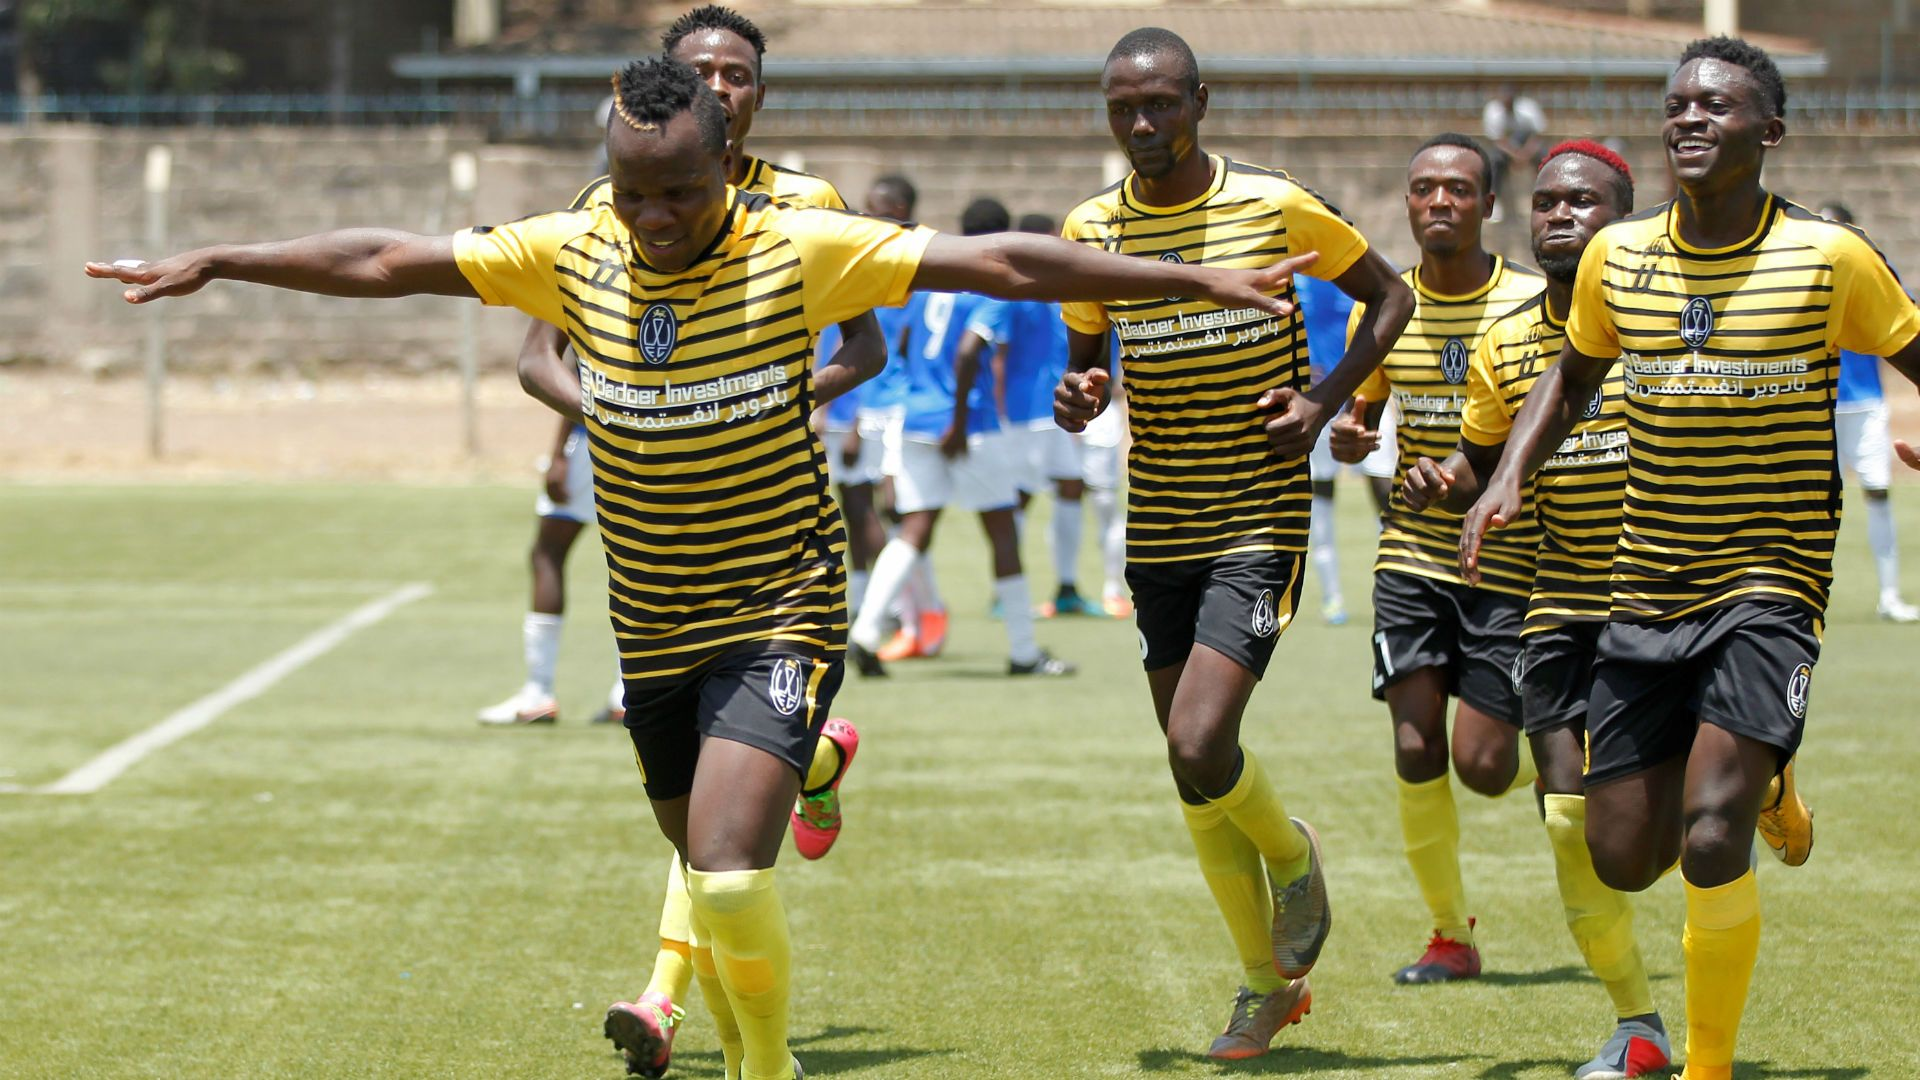 Wazito Football Club: A template for national soccer management